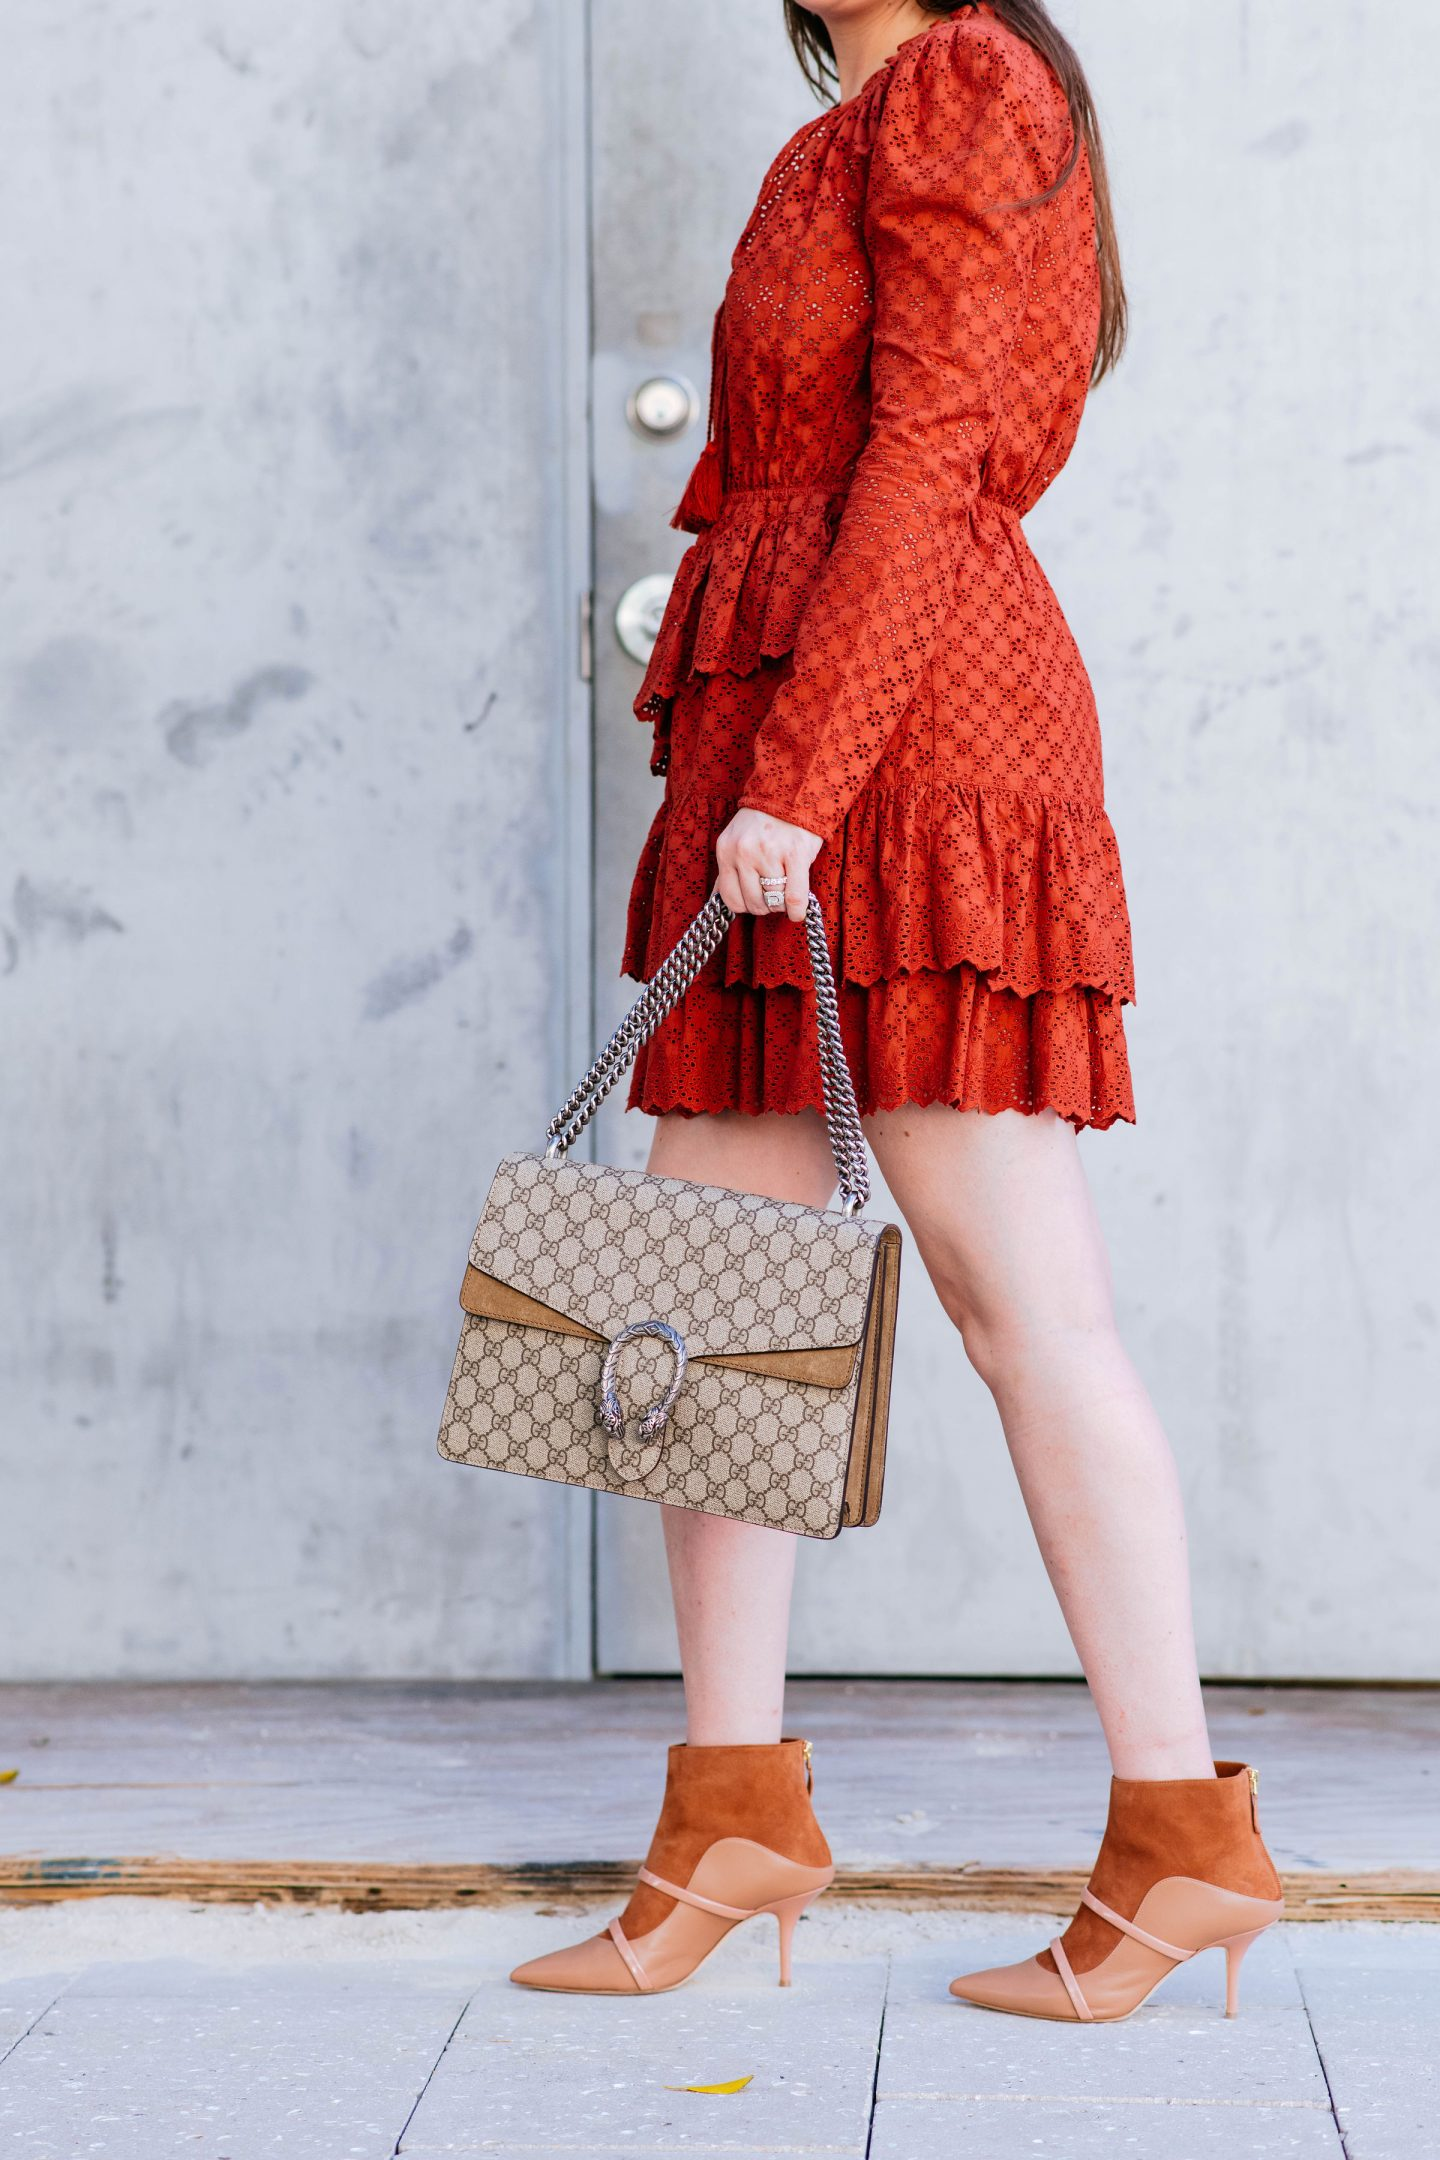 Ulla Johnson Josette Broderie Anglaise Dress, Ulla Johnson dress, Malone Souliers, Malone Souliers madison double band boot, Gucci dionysus, gucci dionysus medium, eyelet dress, ulla johnson eyelet dress, rust colored dress, ulla johnson, gucci dionysus handbag